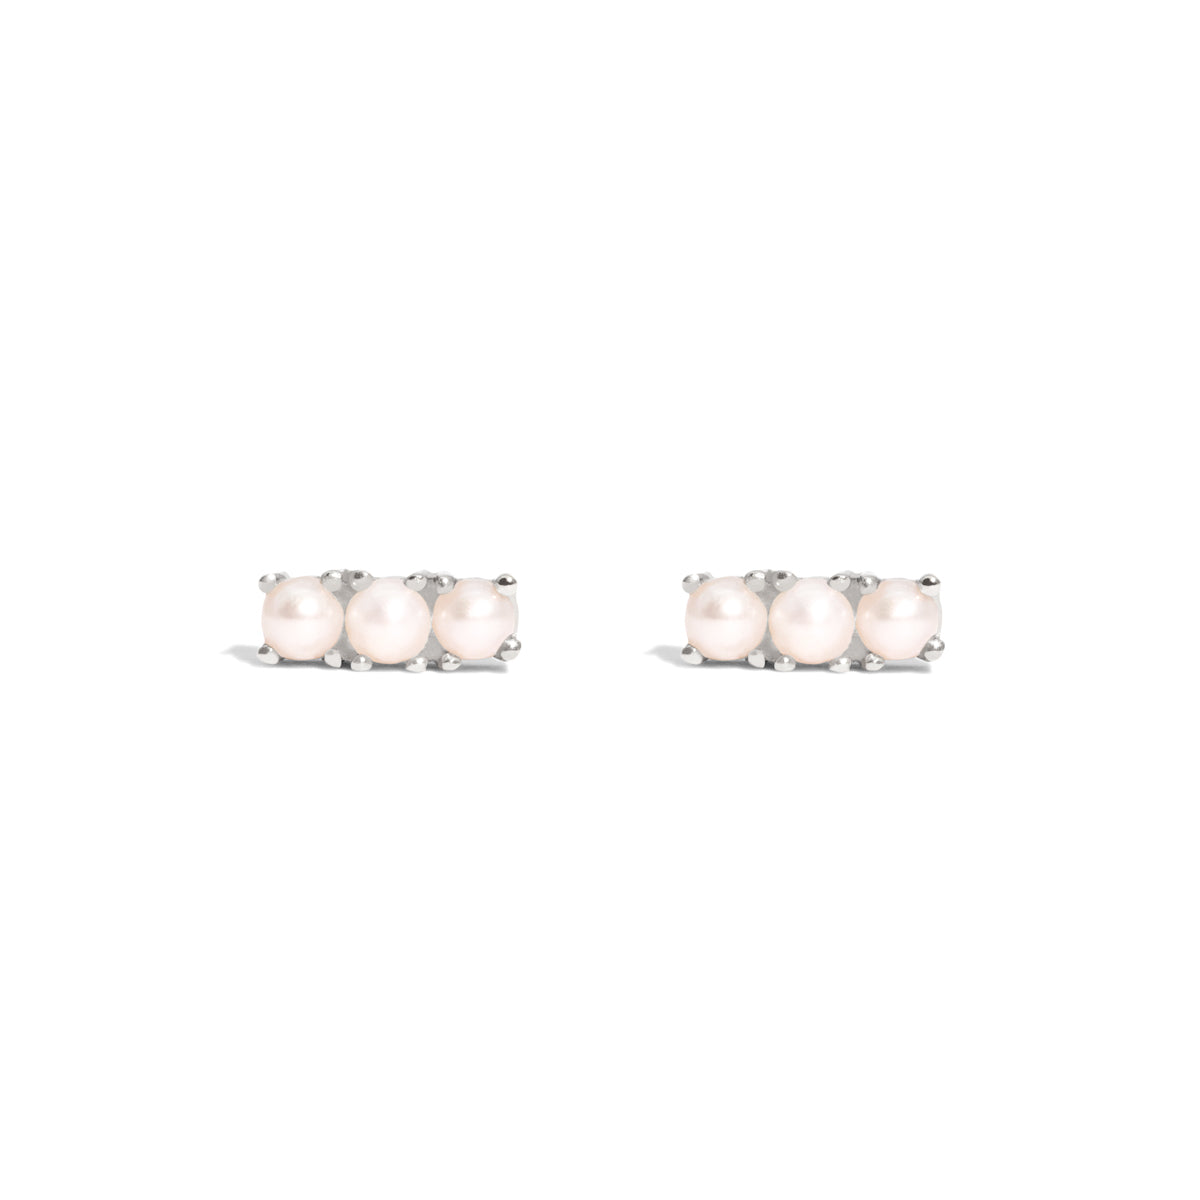 The Silver Pearl Cloud Trio Stud Earrings